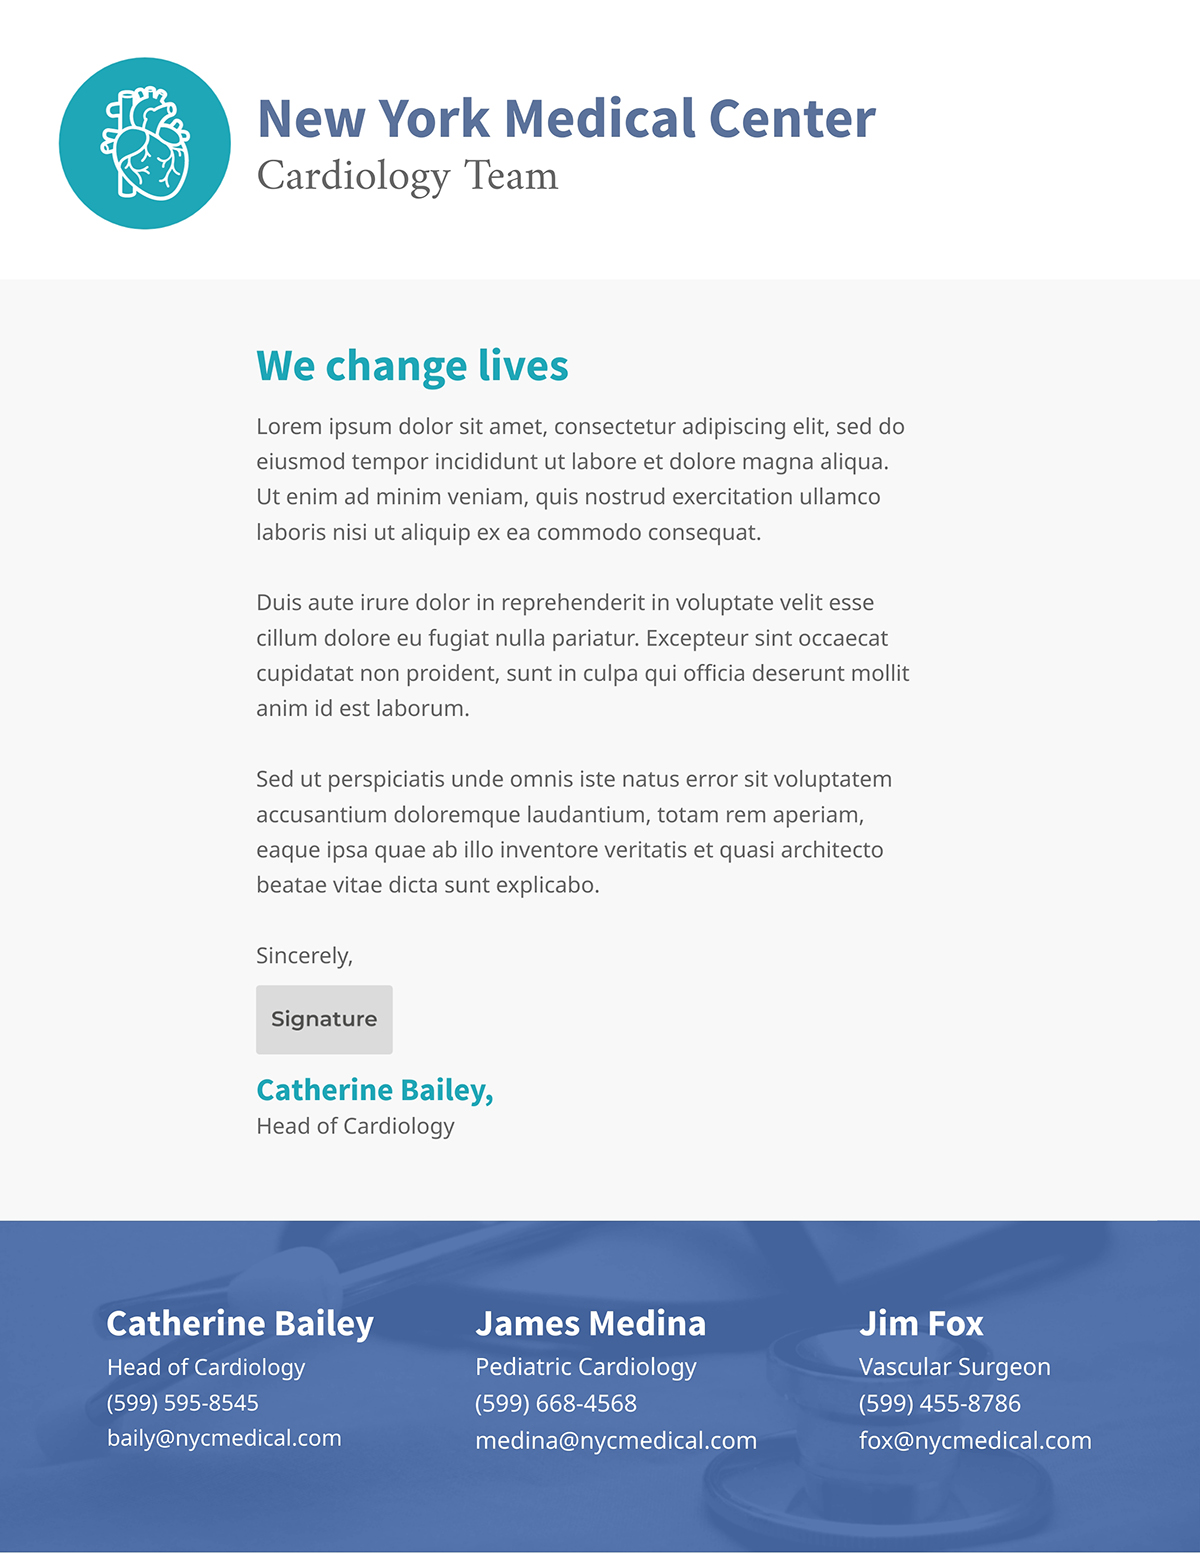 Blue and grey business letter template available in Visme.